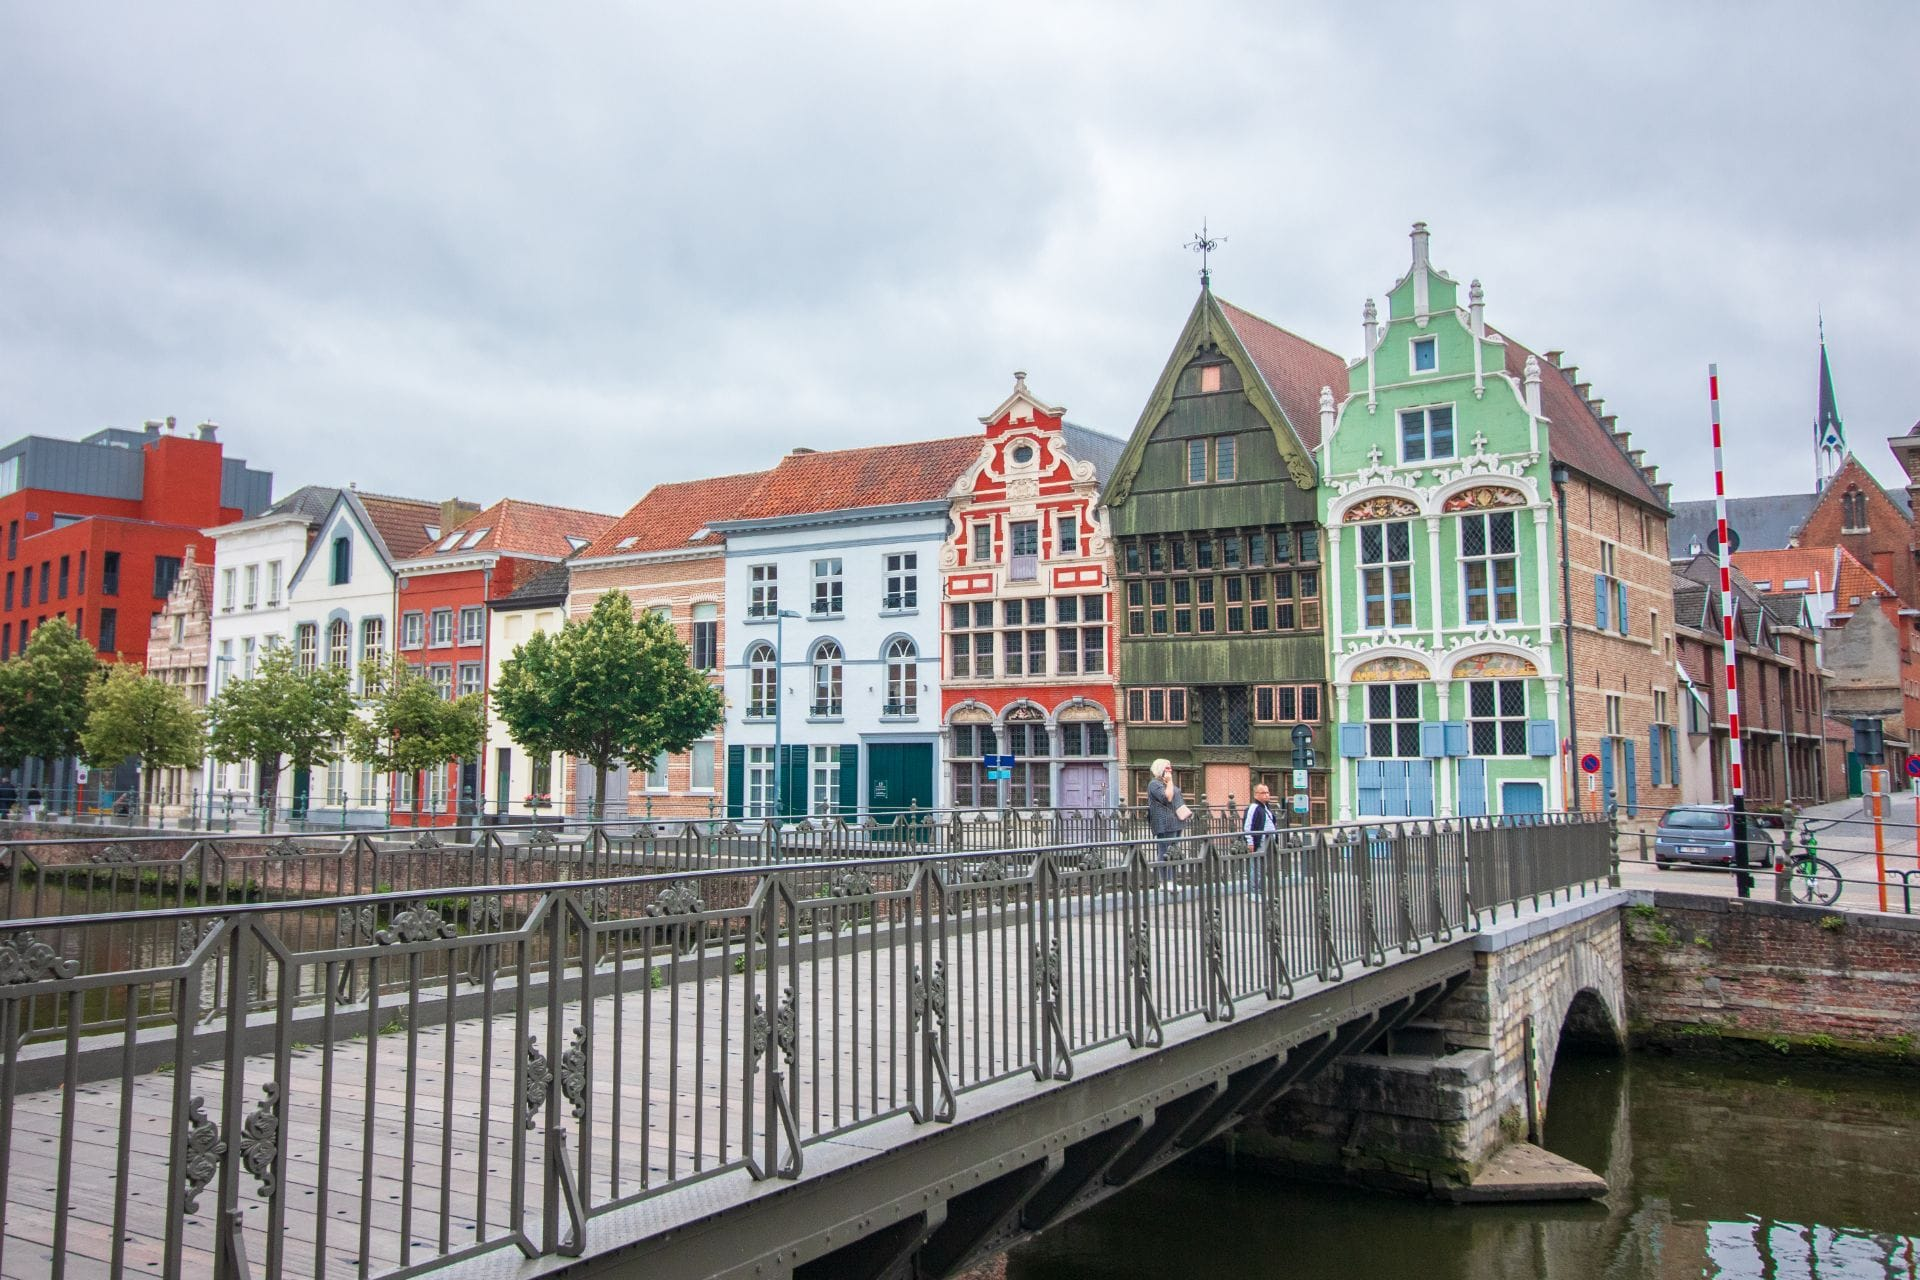 colourful-pretty-buildings-by-river-and-bridge-in-european-city-mechelen-instagram-photography-spots-haverwerf-things-to-do-in-mechelen-belgium